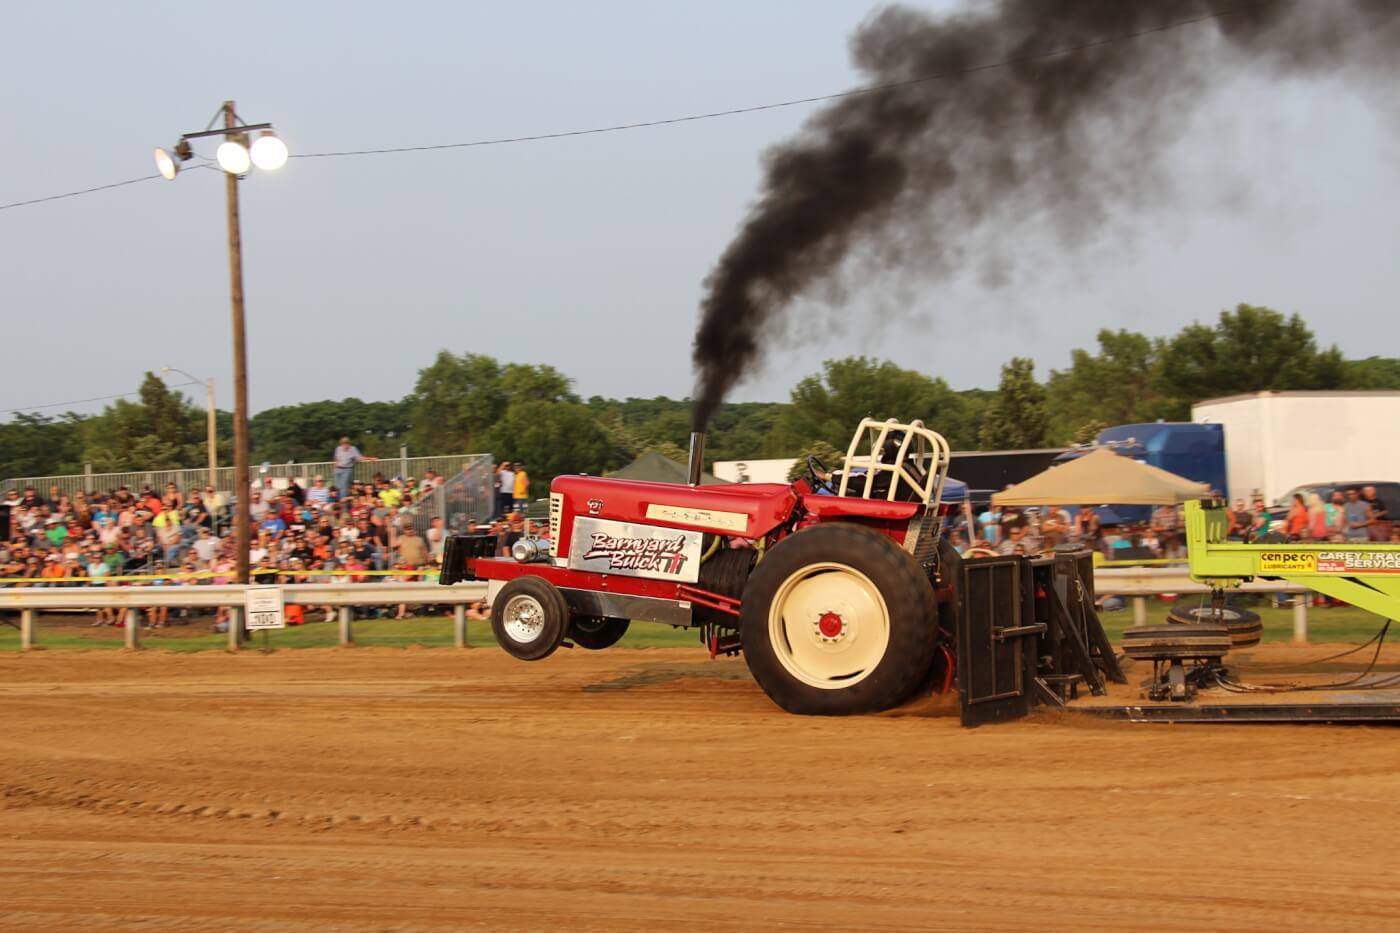 A slew of hot-running tractors showed up for the 9,500-pound 466 class sanctioned by the Heartland Tractor Pullers Association. Here, Tim Vorwald lays down a textbook pass with his Farmall 450. He would finish in Third Place with a distance of 301.9 feet.